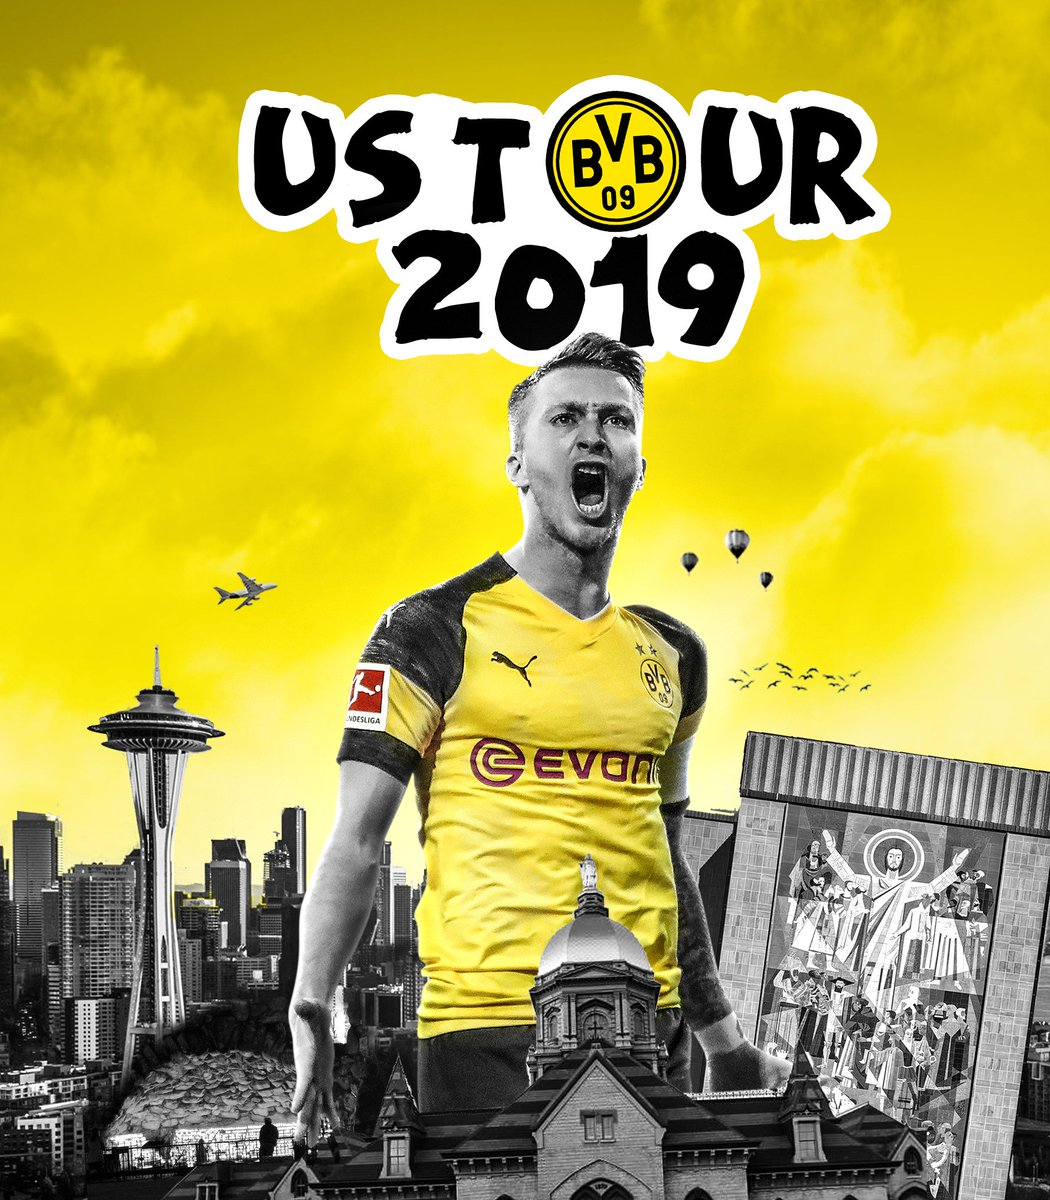 Sup USA... we're back!    July 17th vs. @SoundersFC at Century Link Field  July 19th vs. @LFC at Notre Dame Stadium   See you in Seattle and South Bend  <br>http://pic.twitter.com/bocu97T0Hj